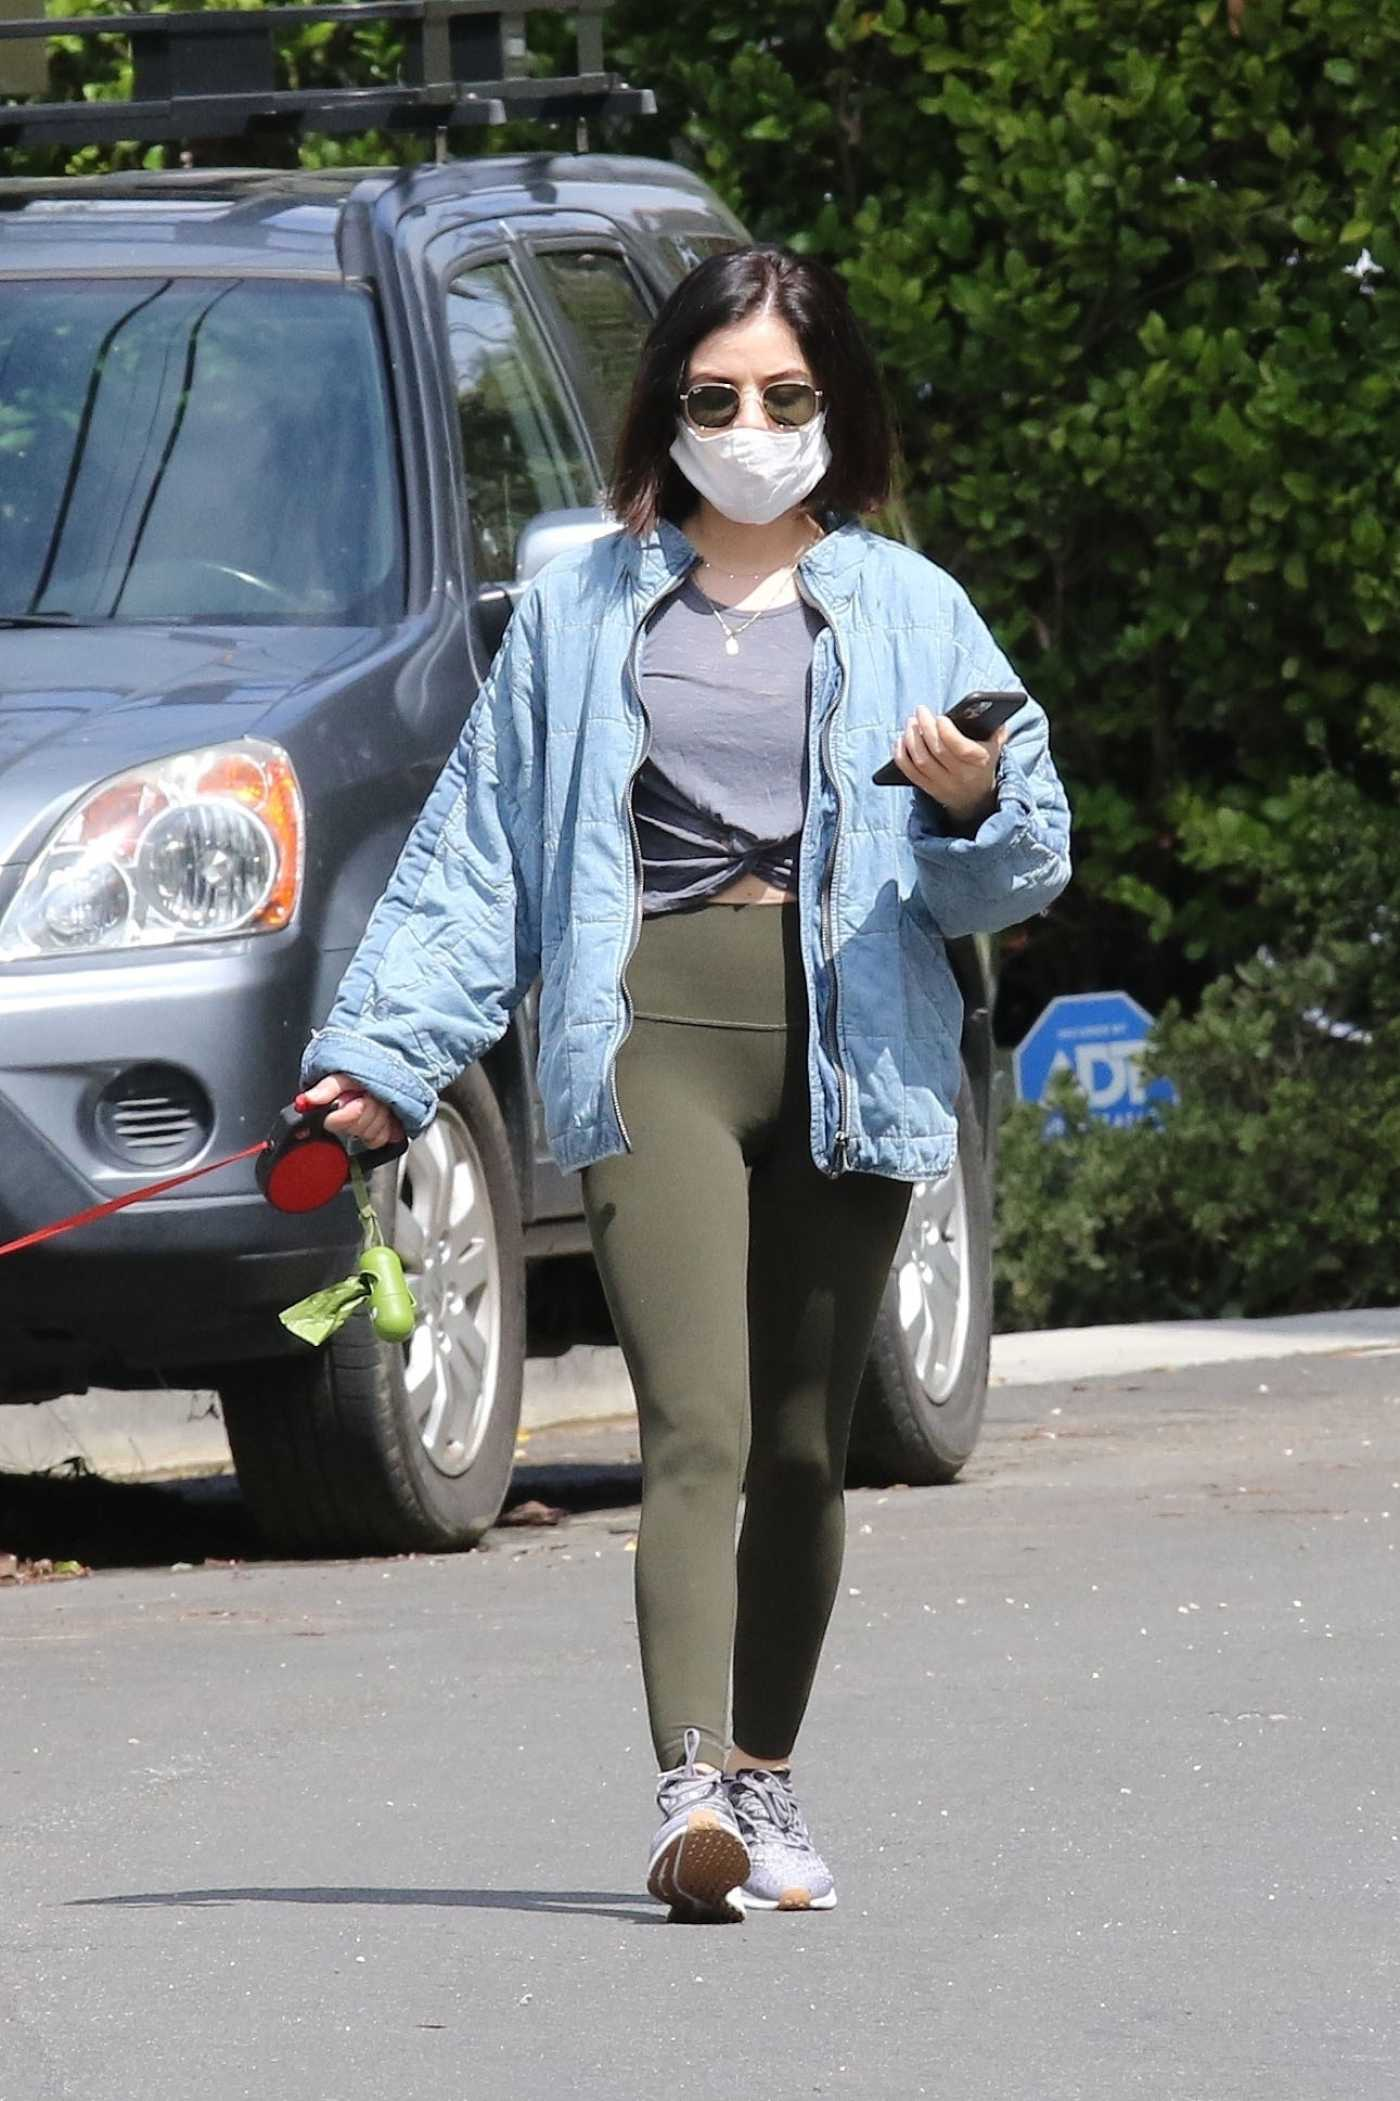 Lucy Hale in a Face Mask Walks Her Dog Elvis in Los Angeles 04/13/2020